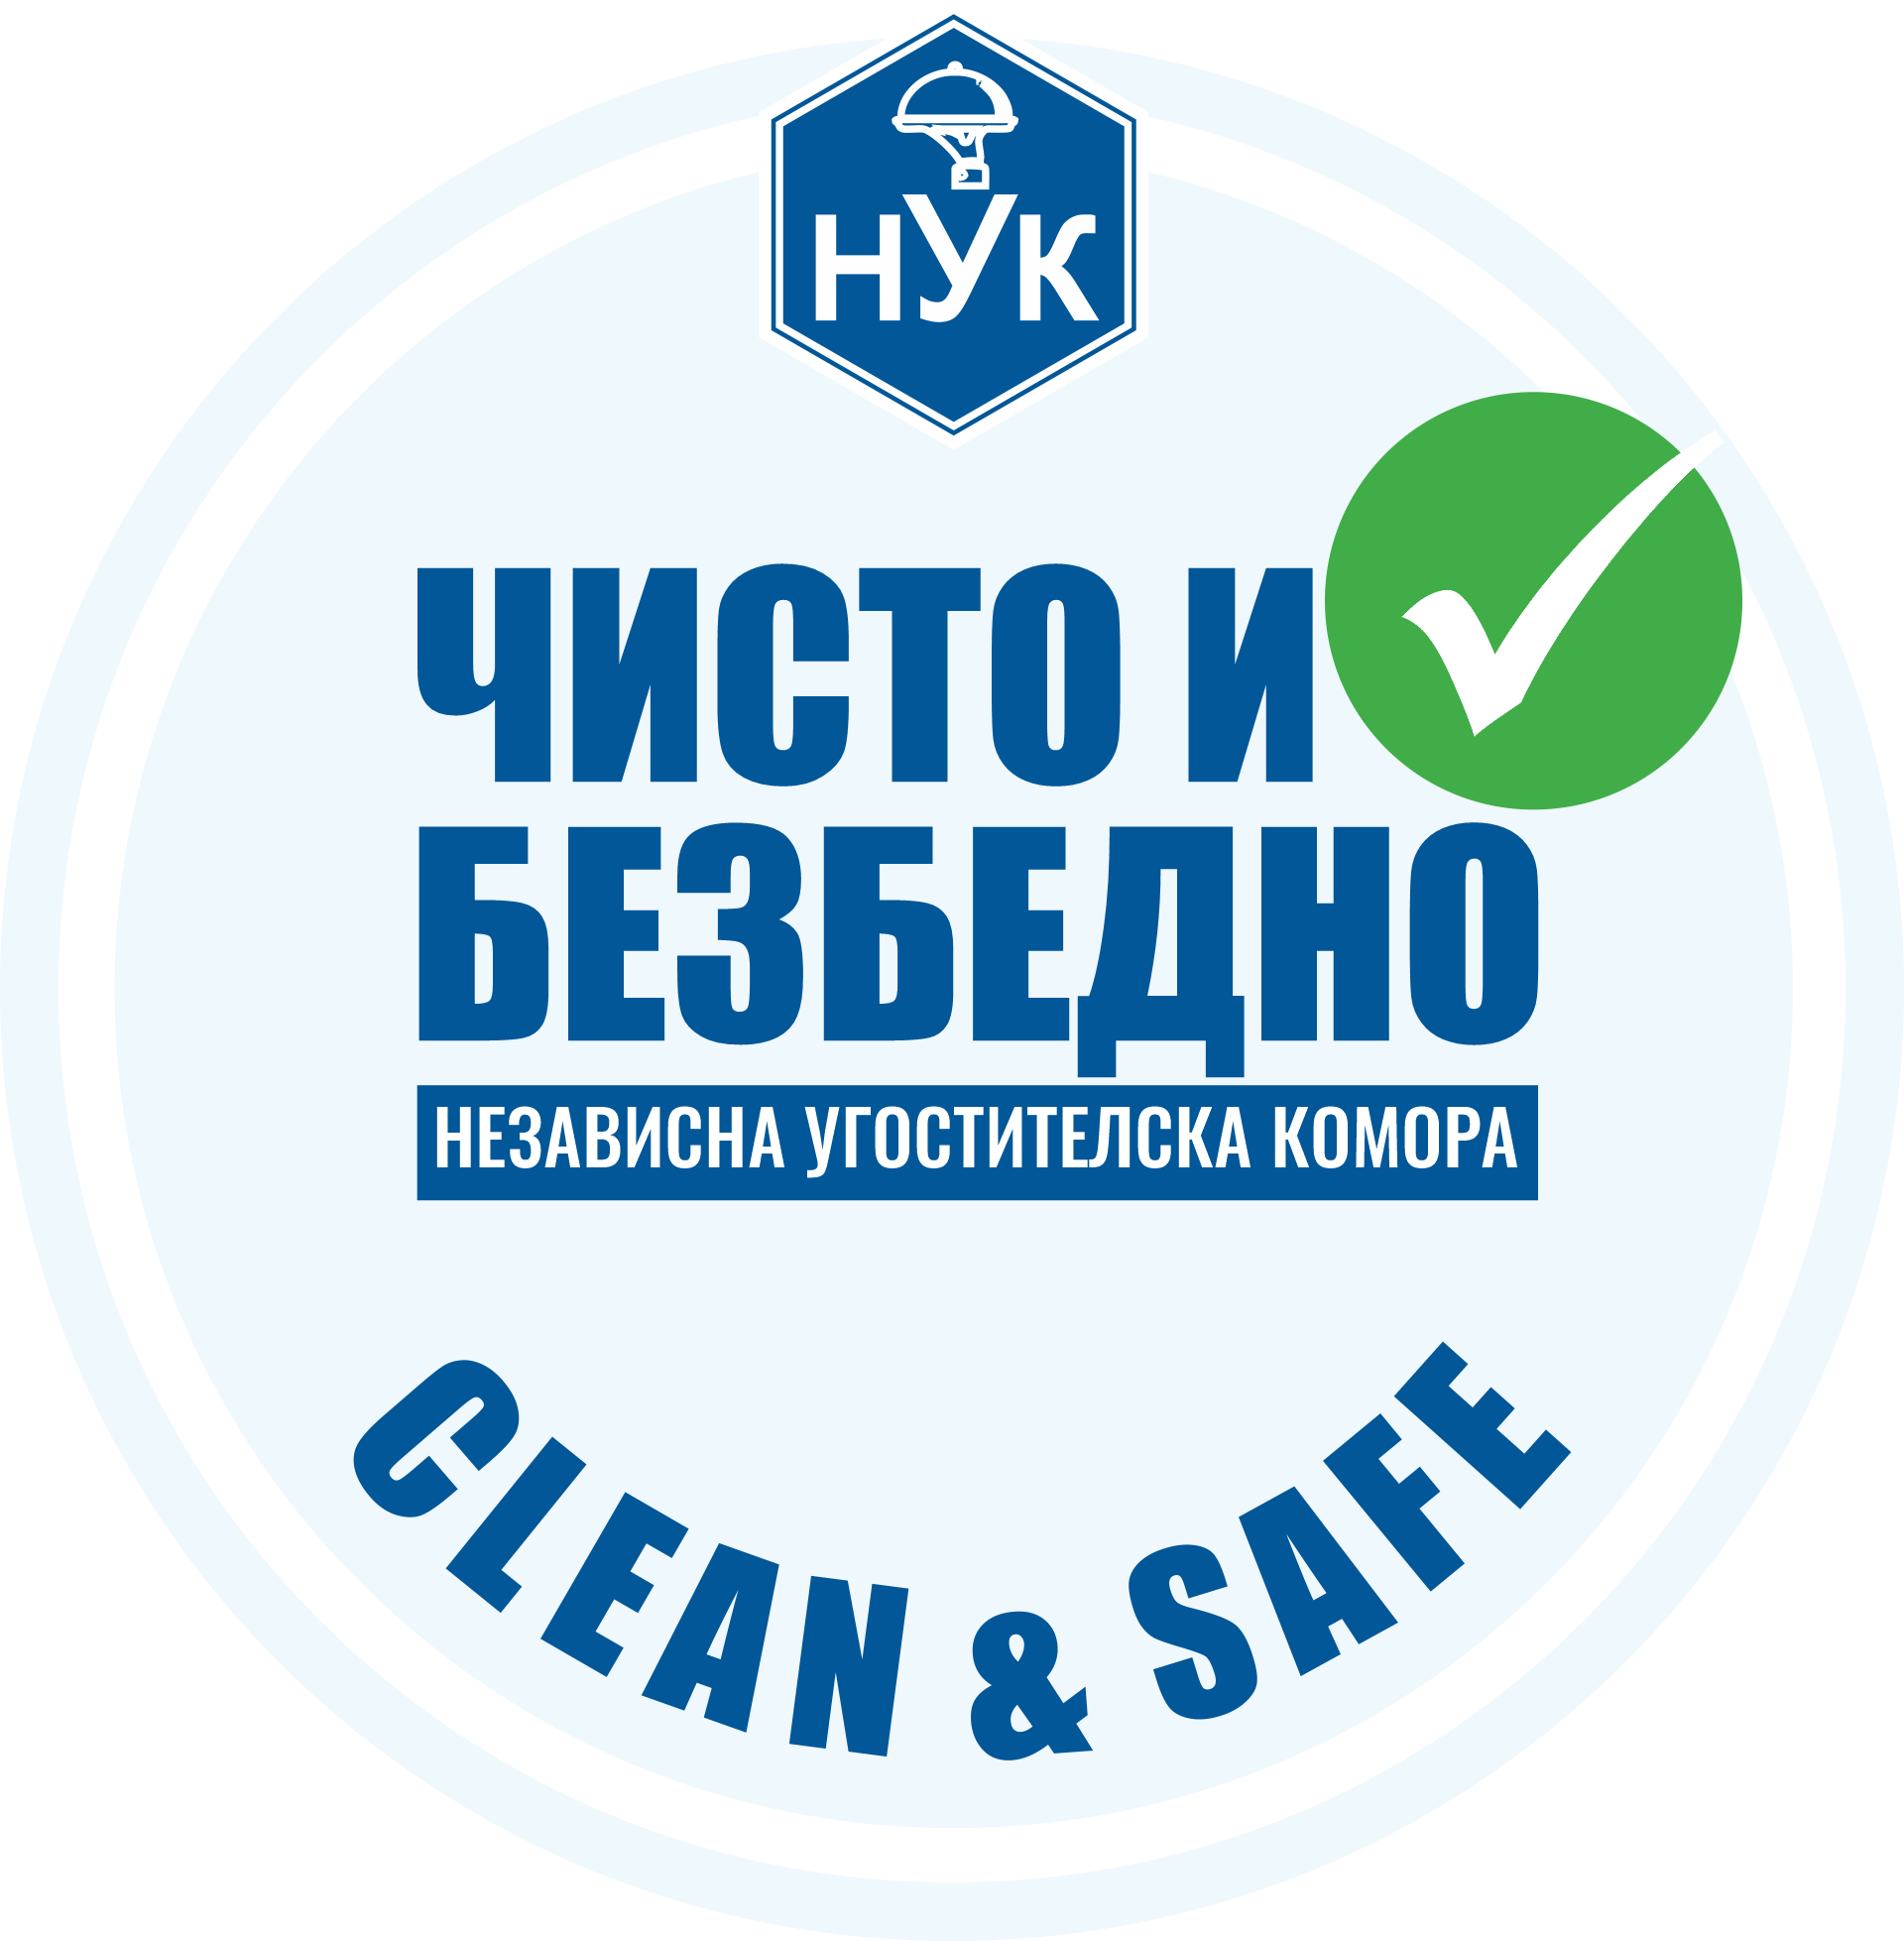 IHC to issue 'Clean & Safe' certificates to hospitality facilities that fully comply with protection guidelines – МИА